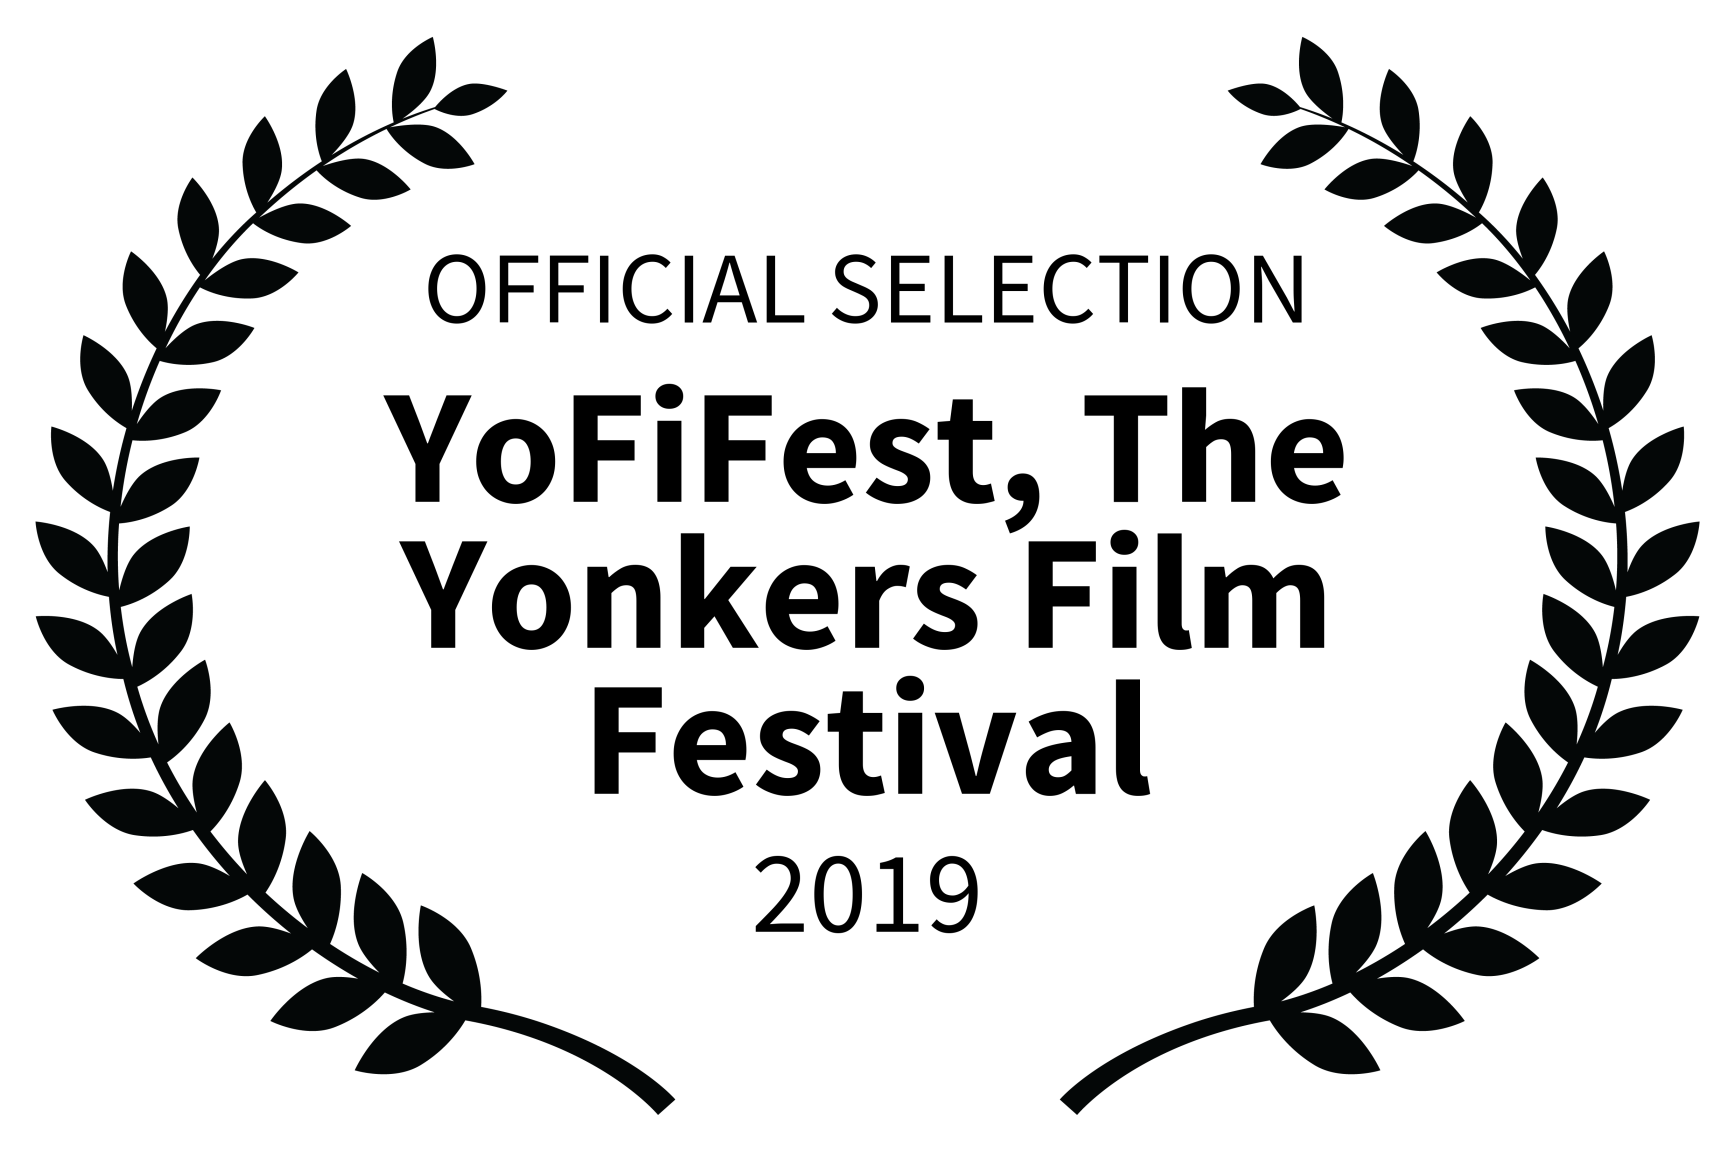 OFFICIAL SELECTION - YoFiFest The Yonkers Film Festival - 2019